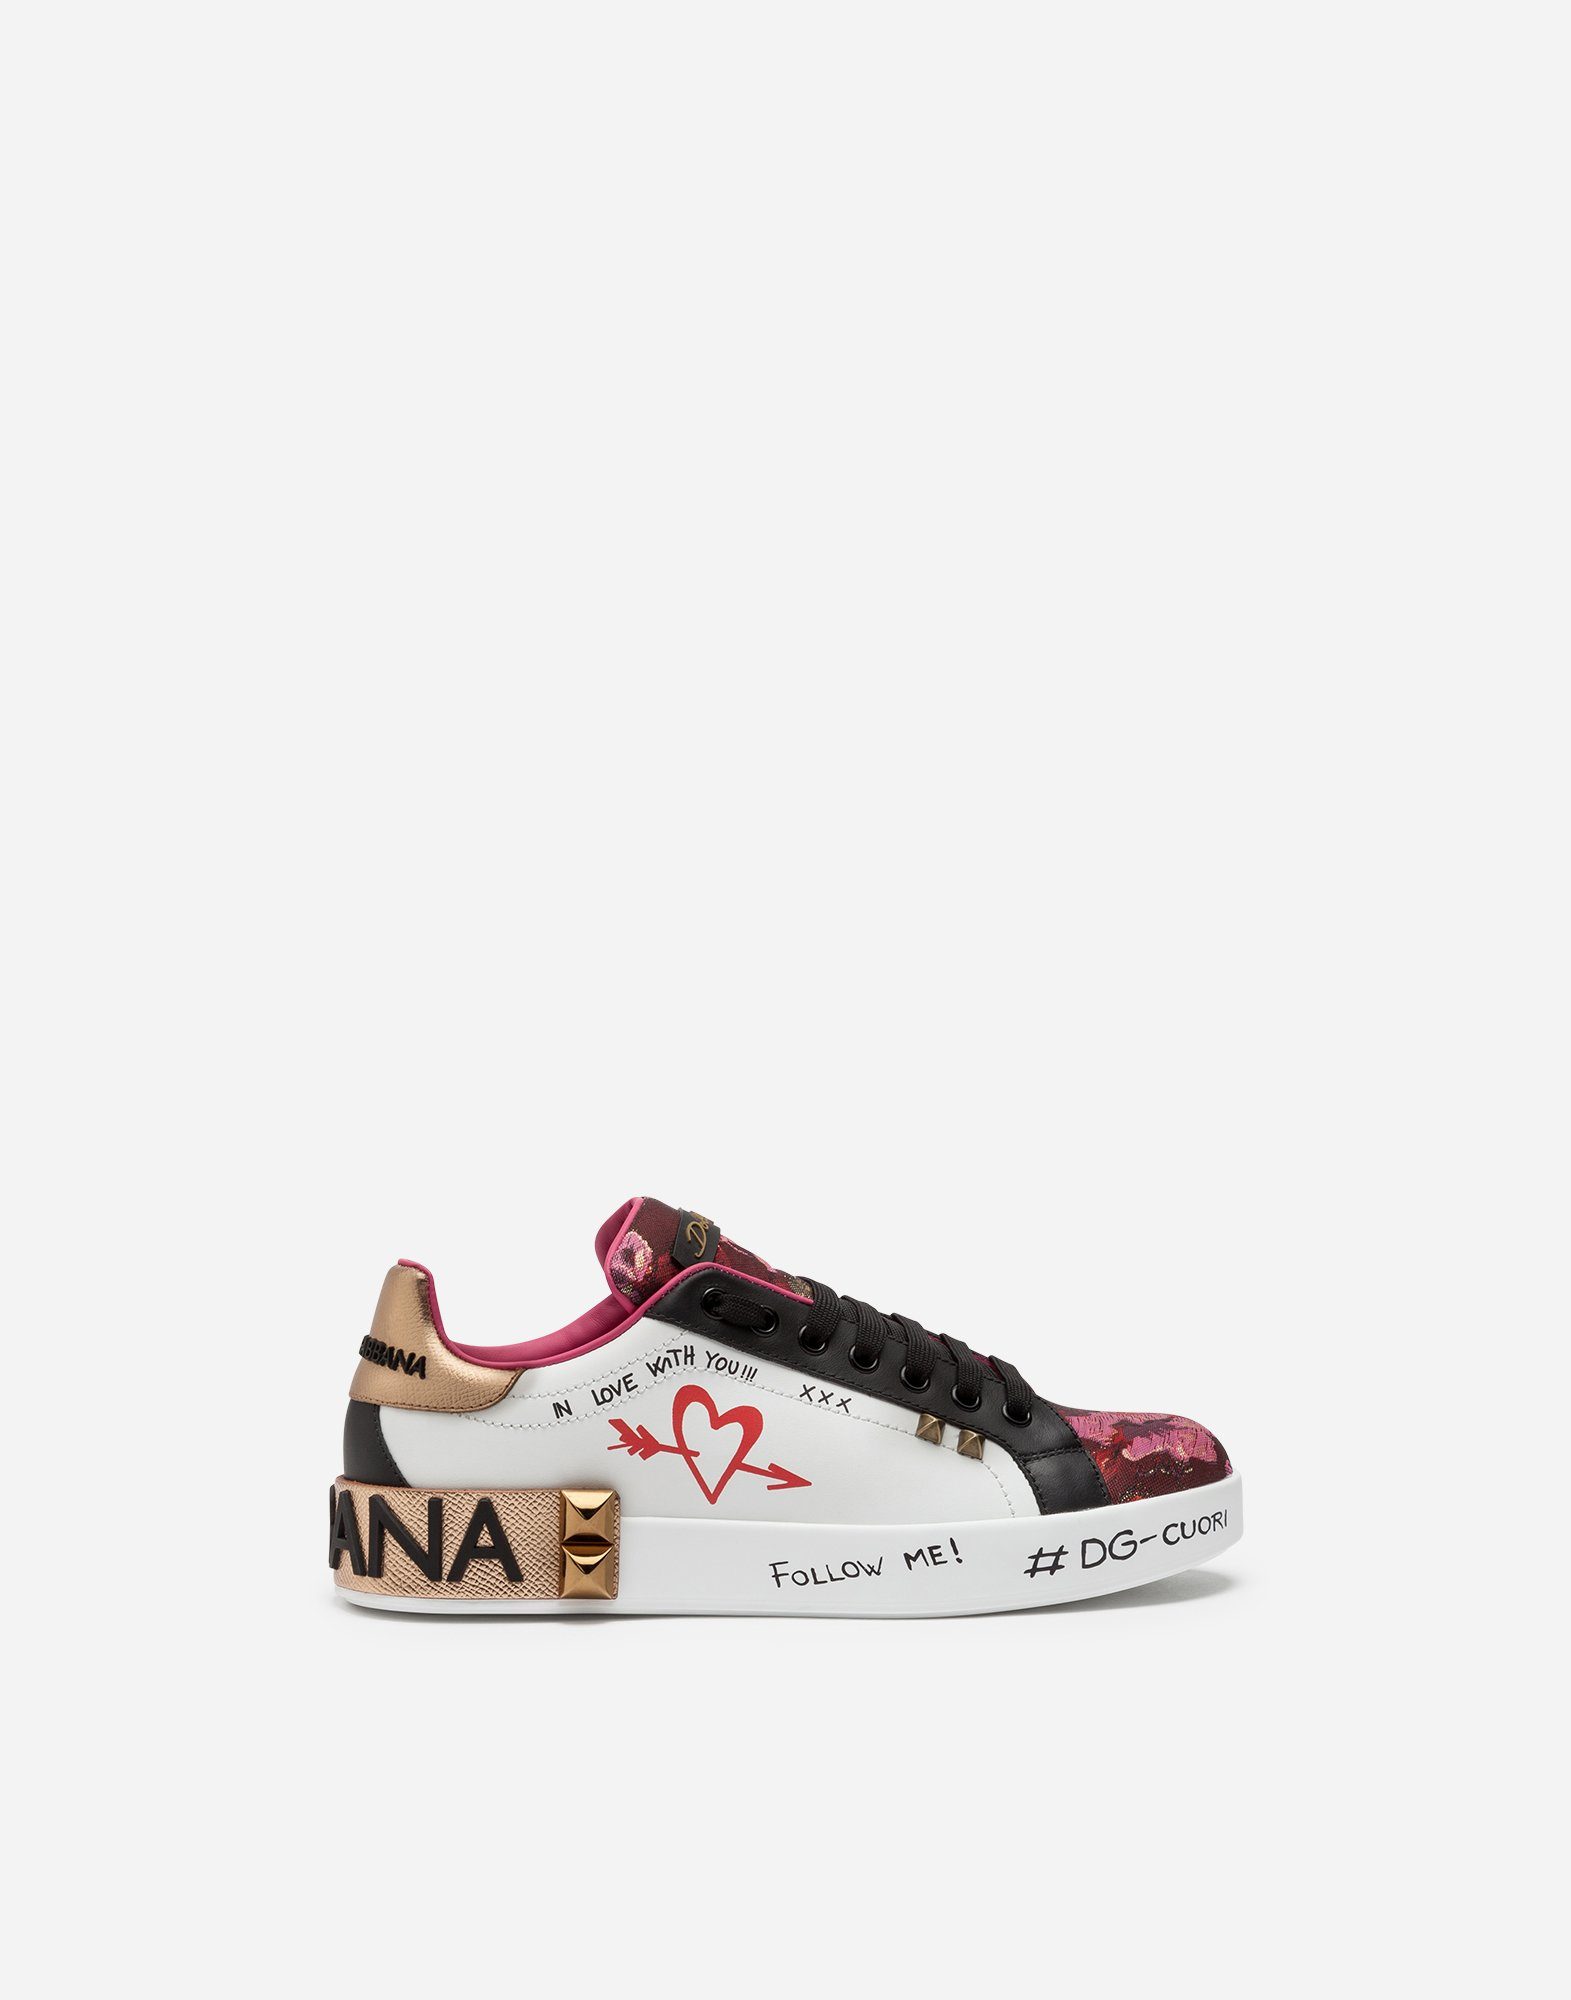 Dolce&Gabbana PORTOFINO SNEAKERS IN MIX OF MATERIALS WITH APPLICATIONS